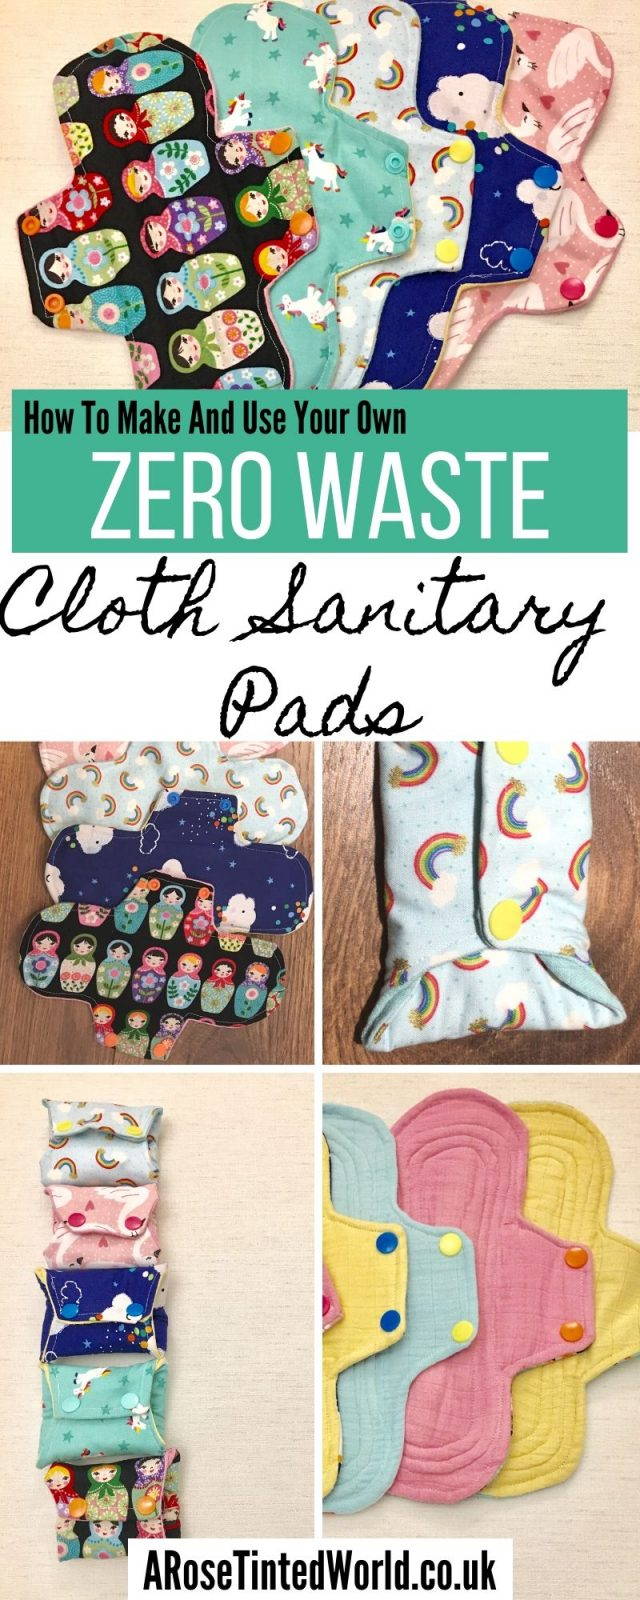 Reusable Cloth Sanitary Pads - How To Make And Use Them. Here is an amazingl FREE guide and the easiest pattern ever to make your own period pads ⋆ Eco friendly alternative to plastic disposables. These are a great way of upcycling old clothes and bedding. Upcycle from cloth. Zero waste period ideas. How to make, wash and clean them. Full guide on how to make your own. Chart of core layers needed. Materials to use. Easy DIY Step by step sewing tutorial. FREE pattern that is the easiest ever!